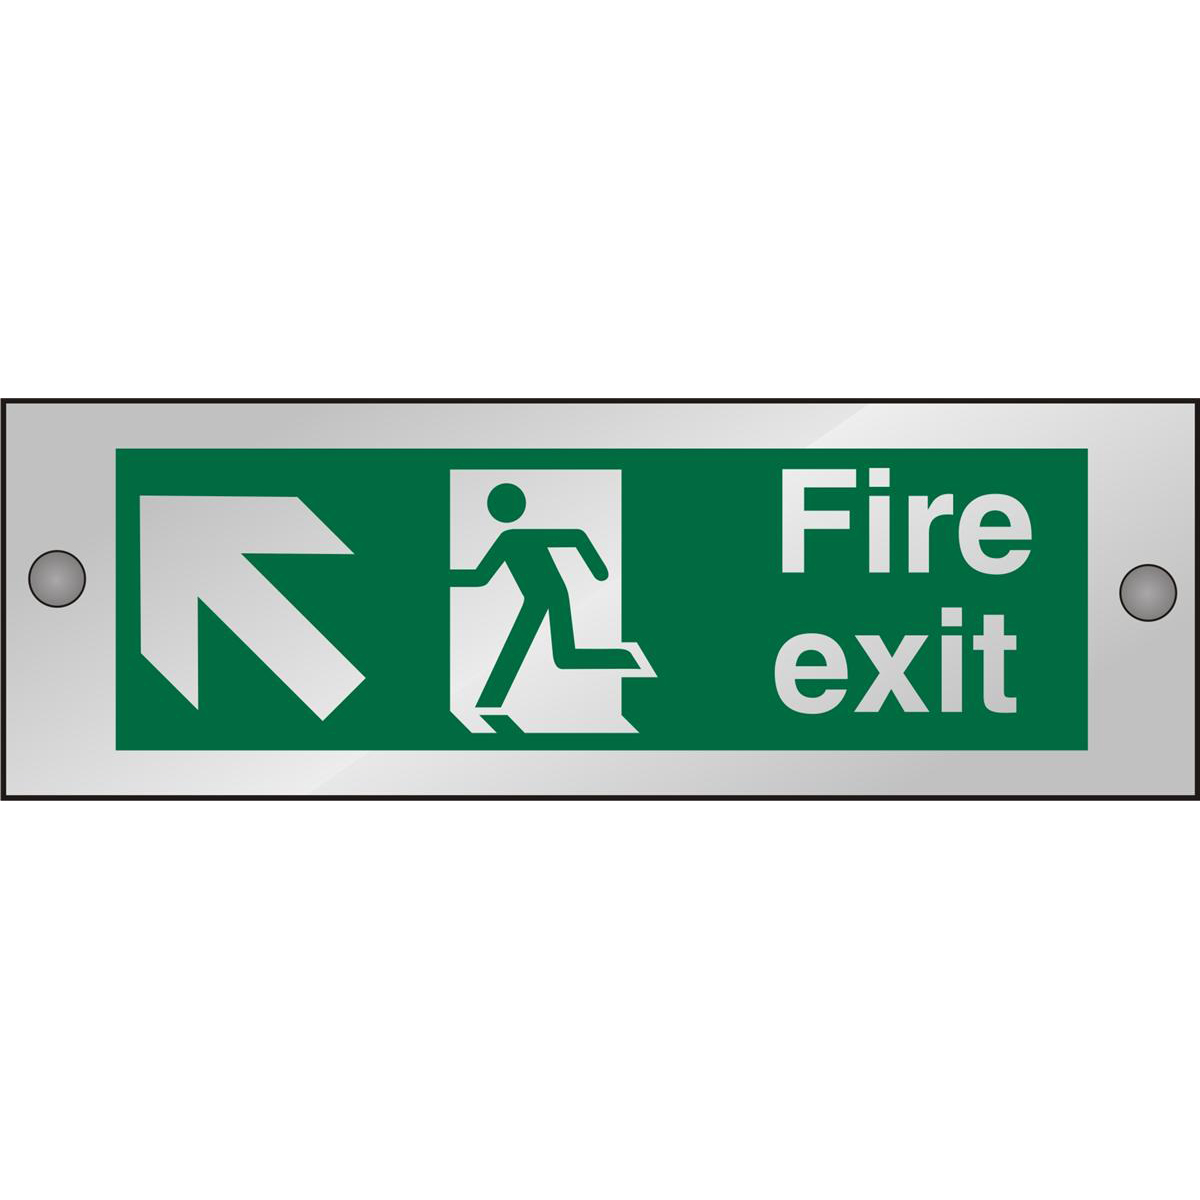 Clear Sign 300x100 5mm FireExit Man Running Left&Arrow tlhc Ref CACSP317300x100 Up to 10 Day Leadtime